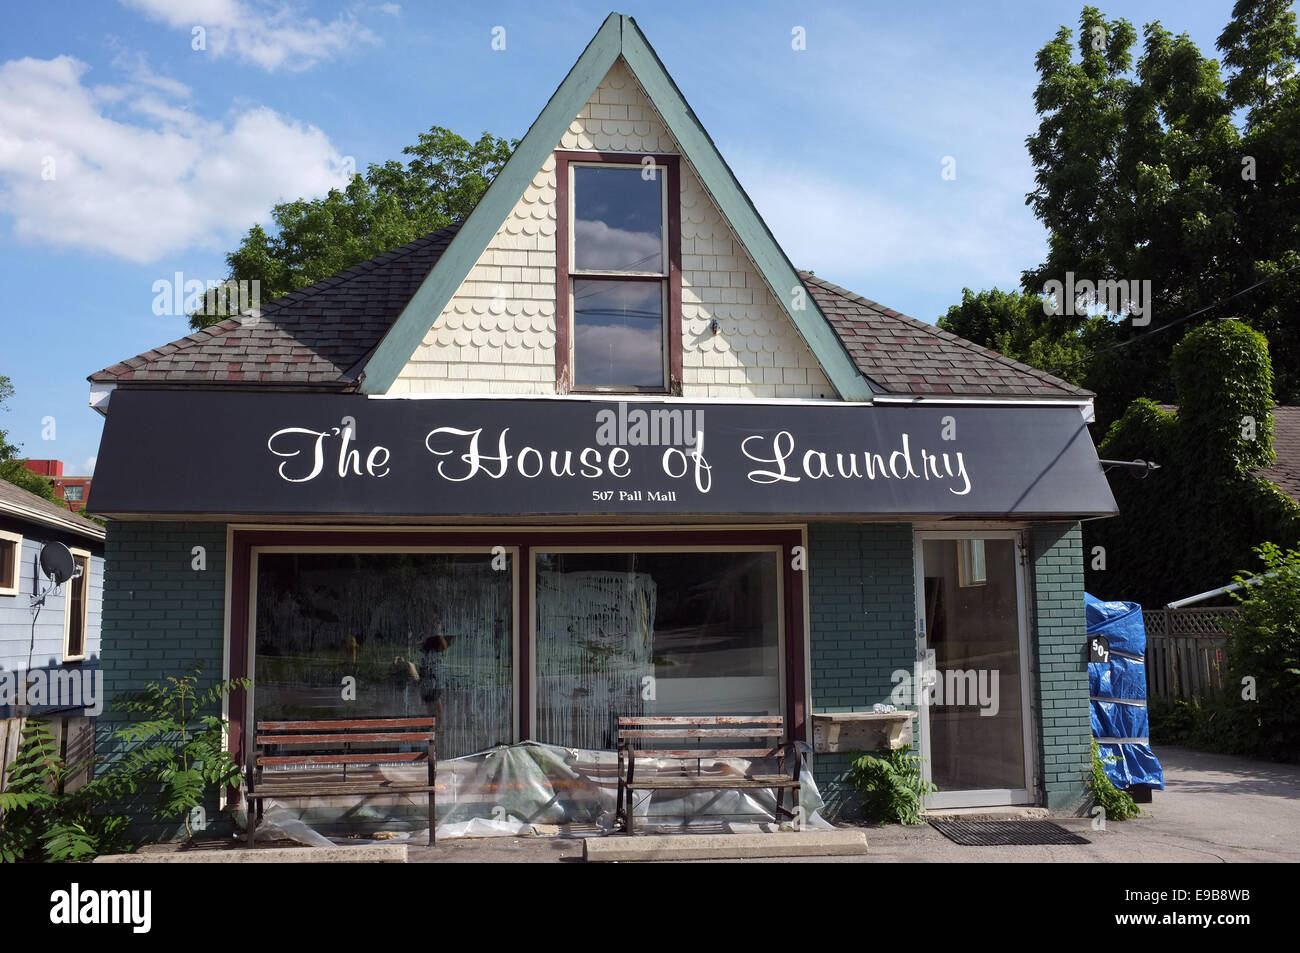 Laundry shop stock photos laundry shop stock images alamy a shop called the house of laundry stock image solutioingenieria Images